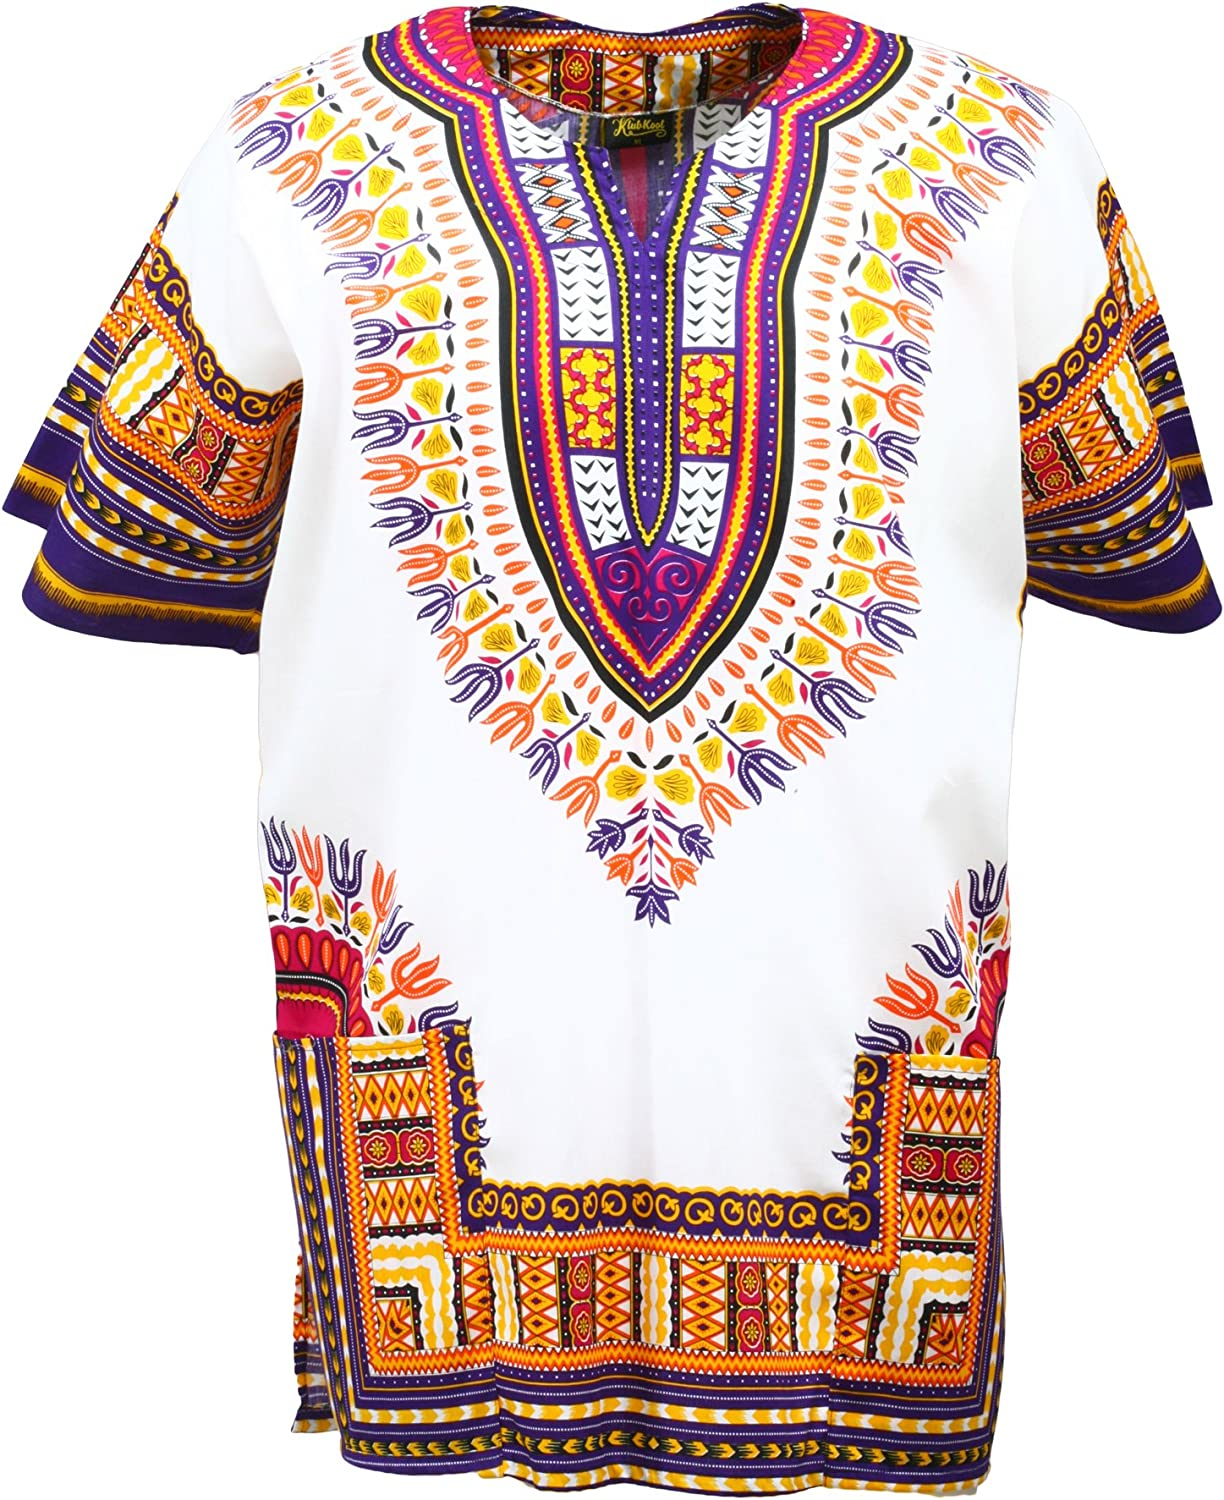 70s Outfits – 70s Style Ideas for Women KlubKool Dashiki Shirt Tribal African Caftan Boho Unisex Top Shirt $12.50 AT vintagedancer.com